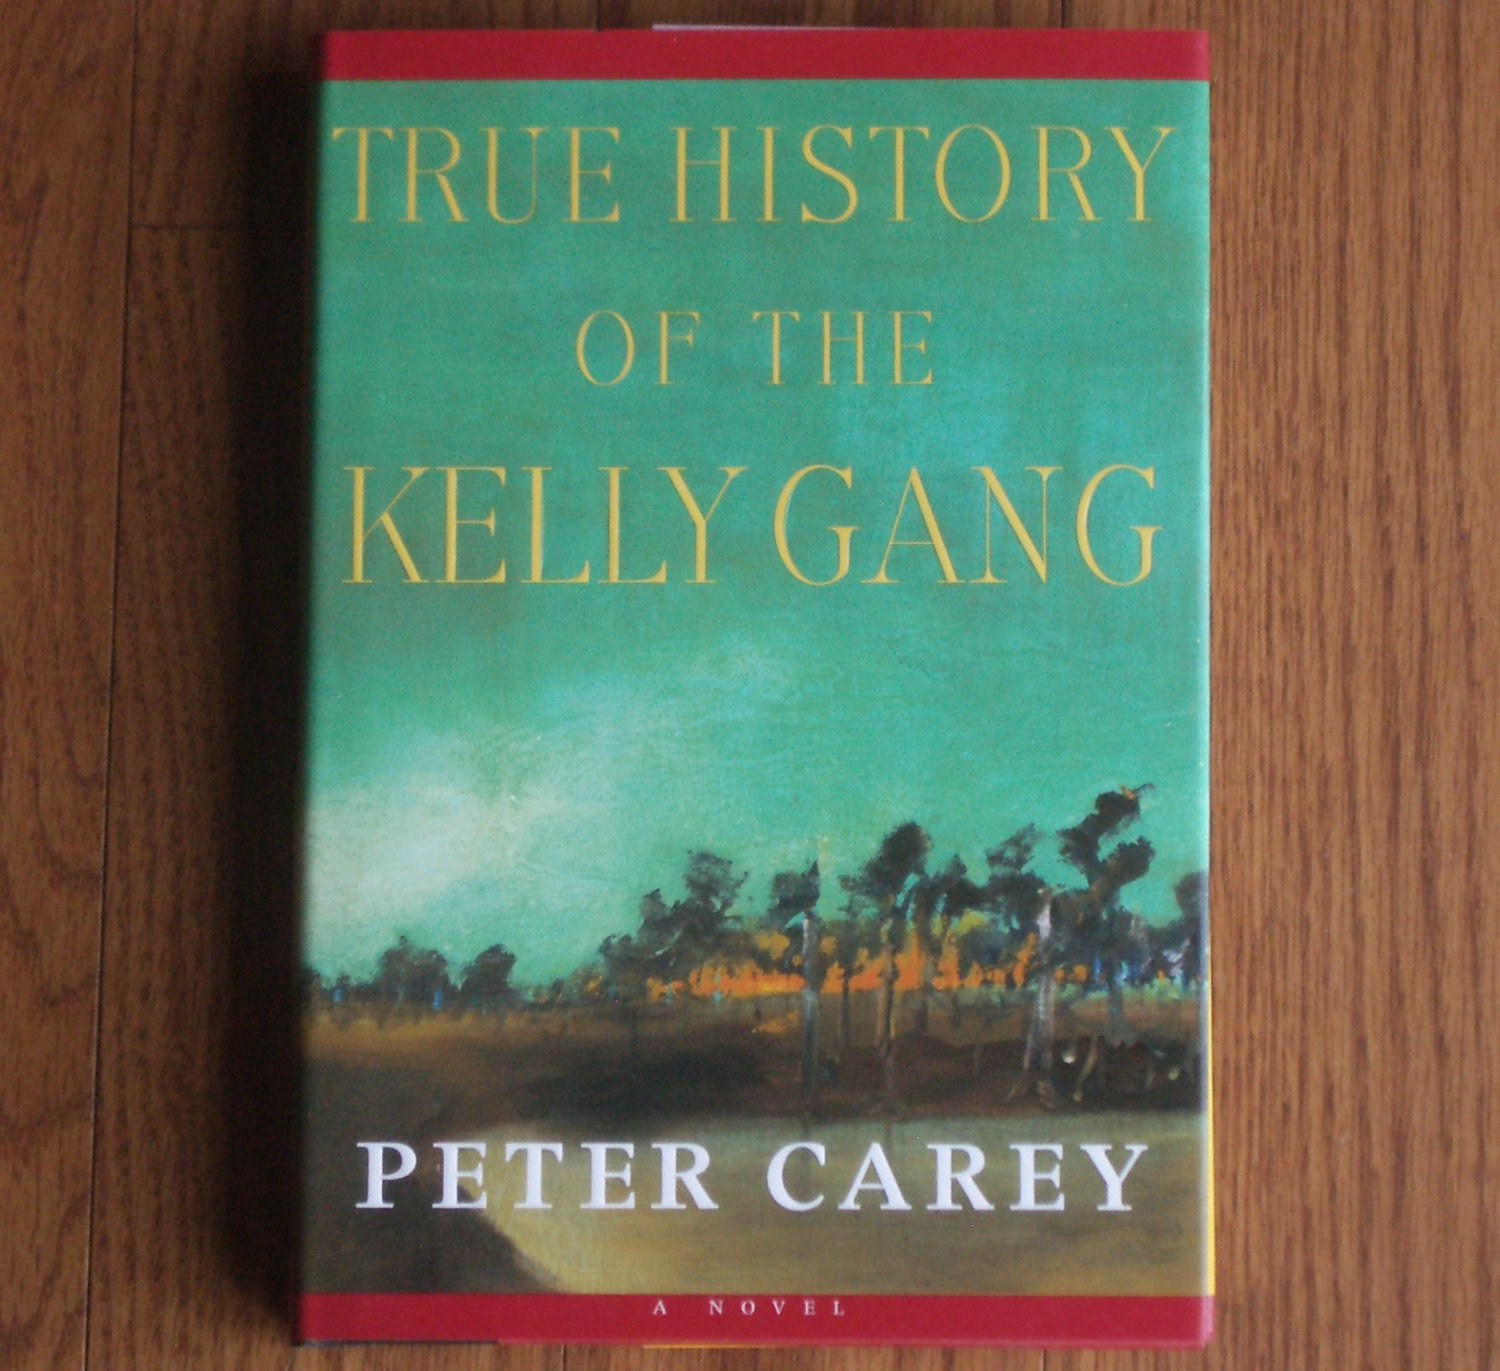 True History of the Kelly Gang by Peter Carey 2001 Hardcover, Dust Jacket 1st Edition